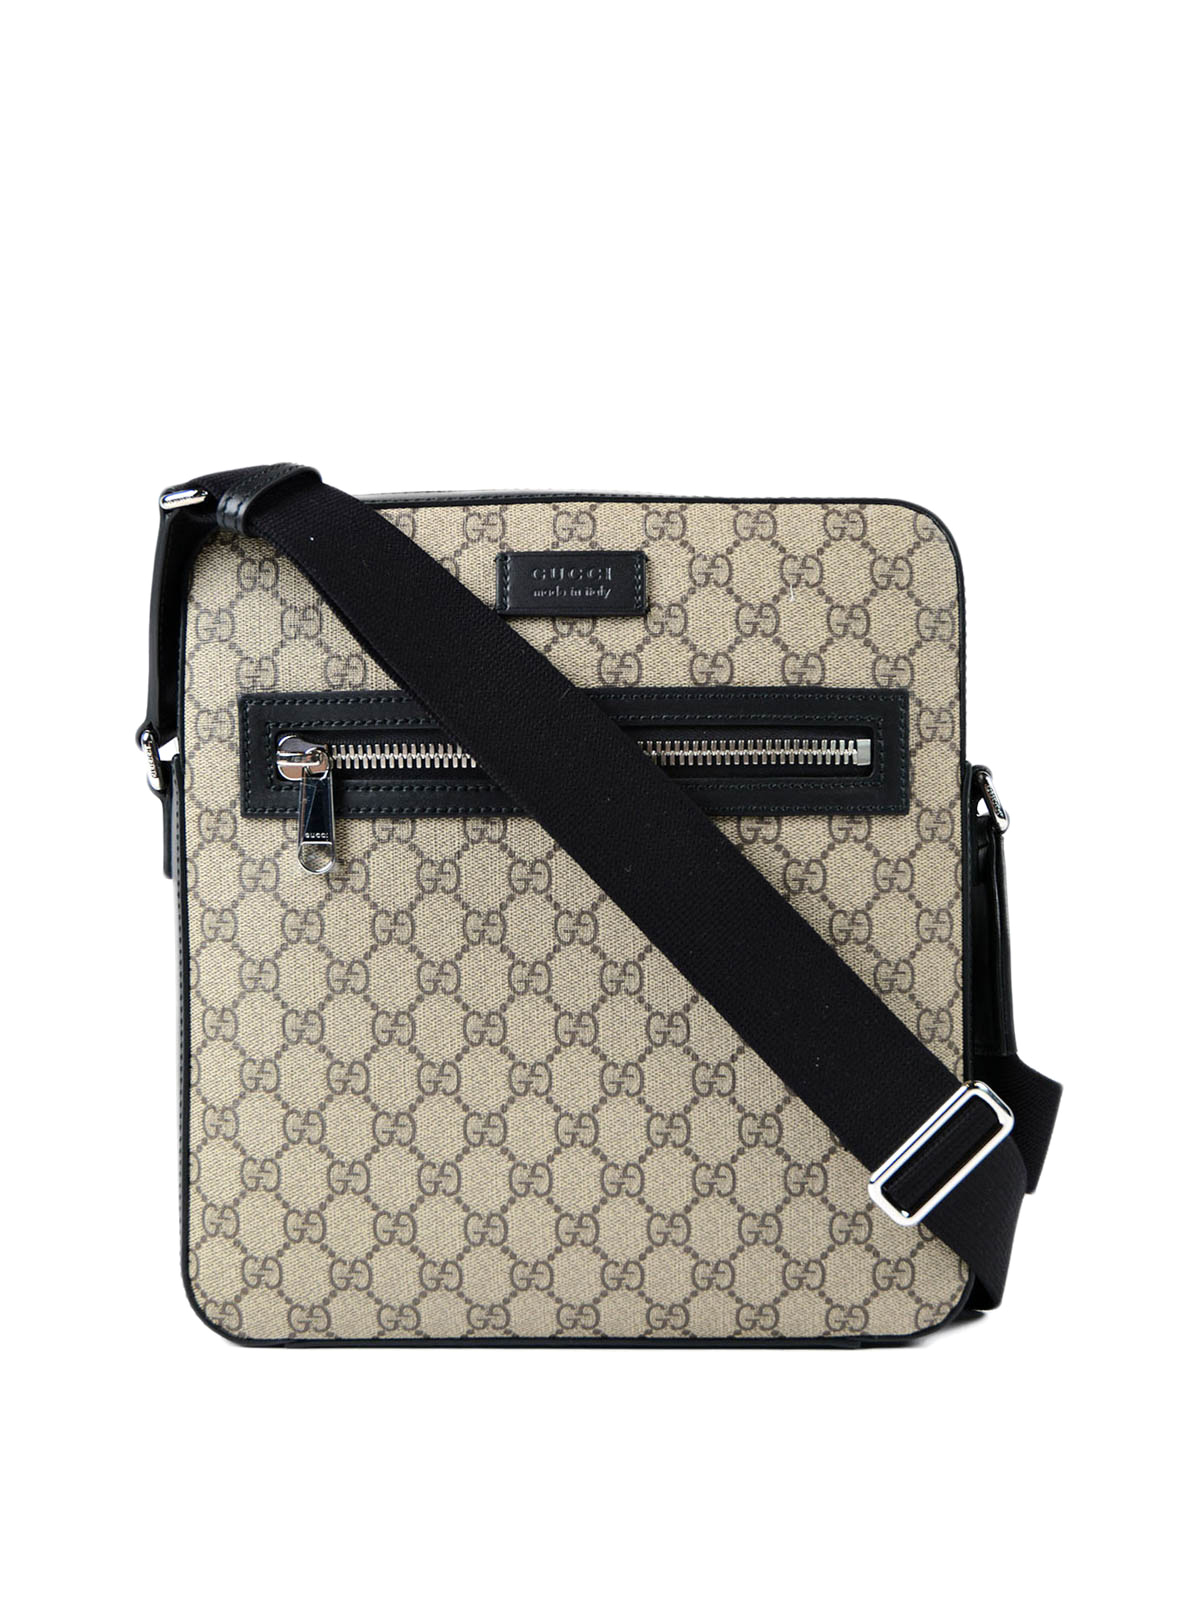 f732a33428ee Gucci Ophidia Gg Supreme Canvas Messenger Bag - Ontario Active ...